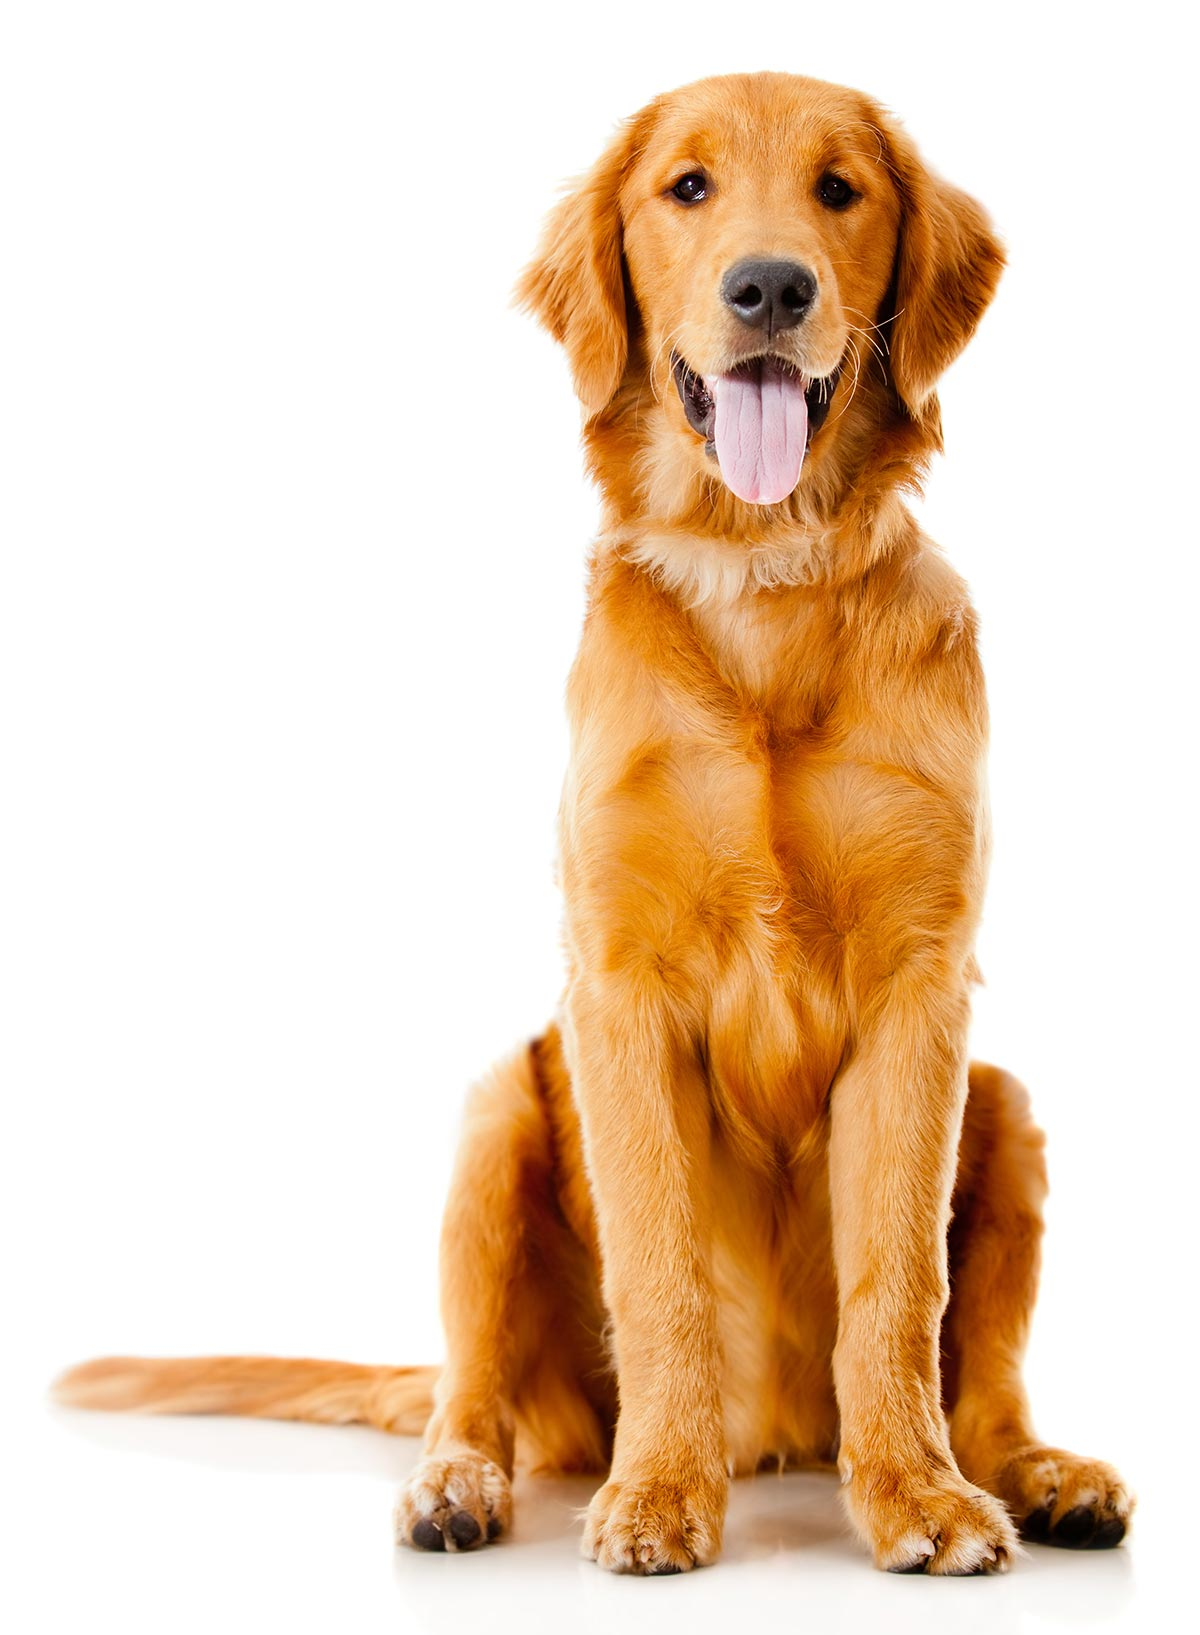 labrador dog sitted on white background